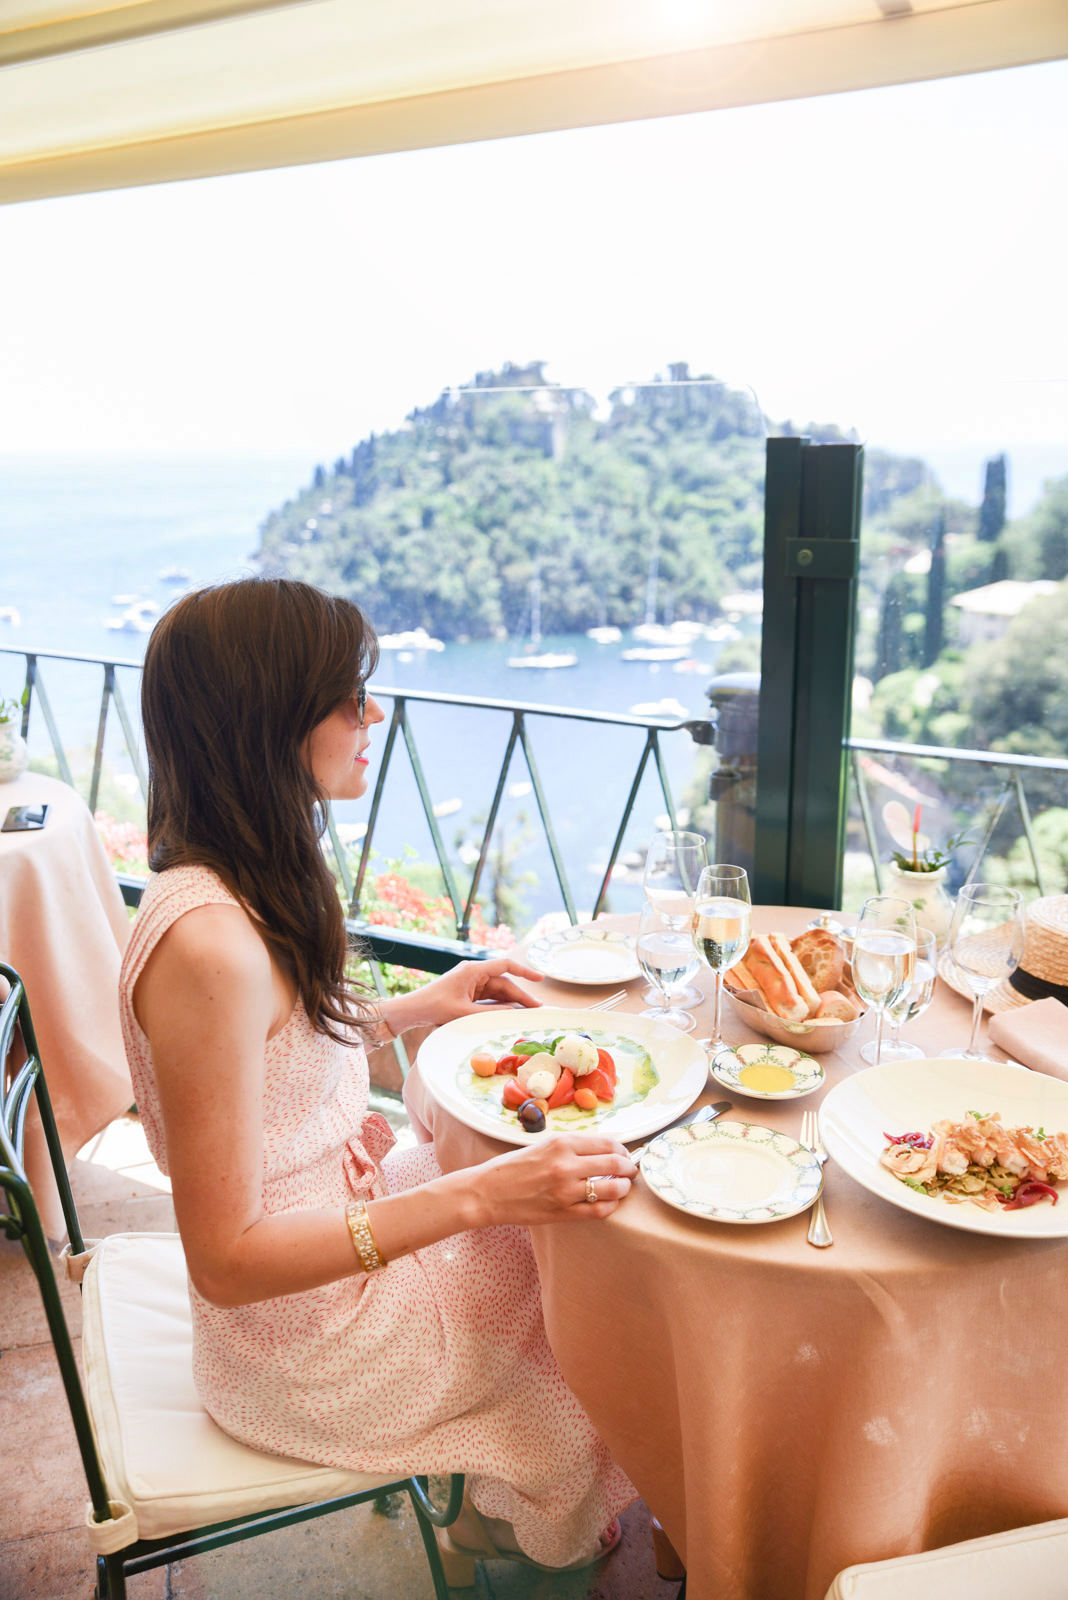 Blog-Mode-And-The-City-Lifestyle-Italie-Portofino-Belmond-Hotel-15